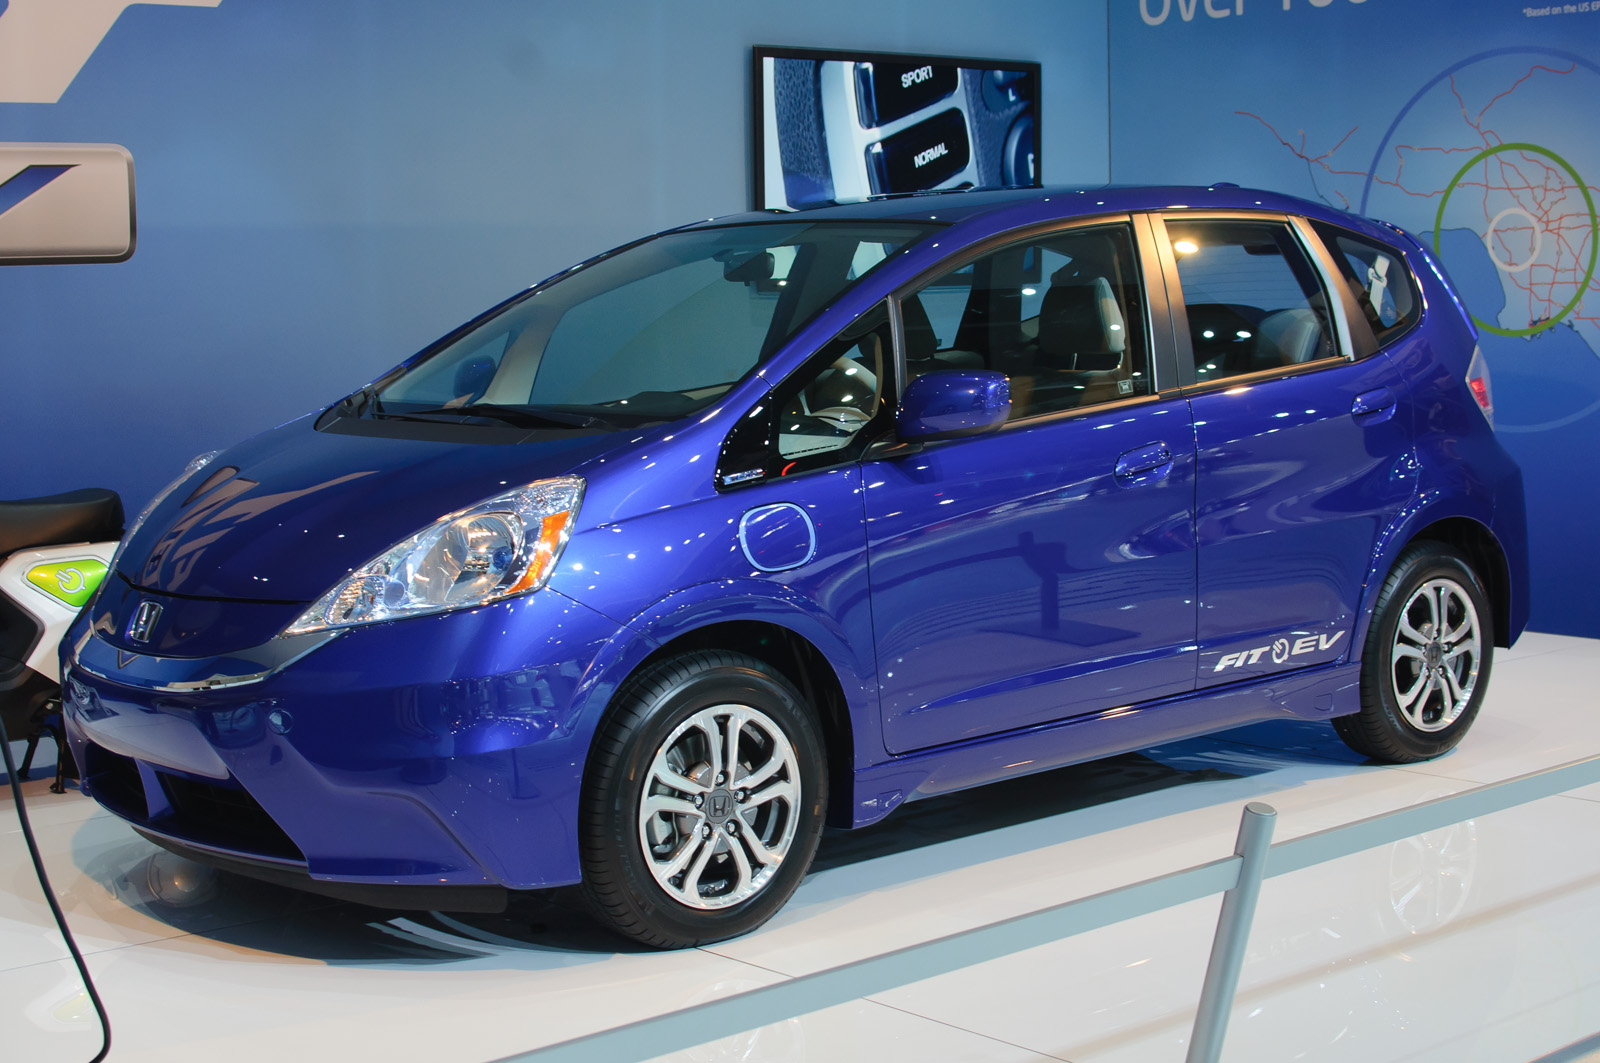 Cars Hybrids And An Electric Compared The Corvallis